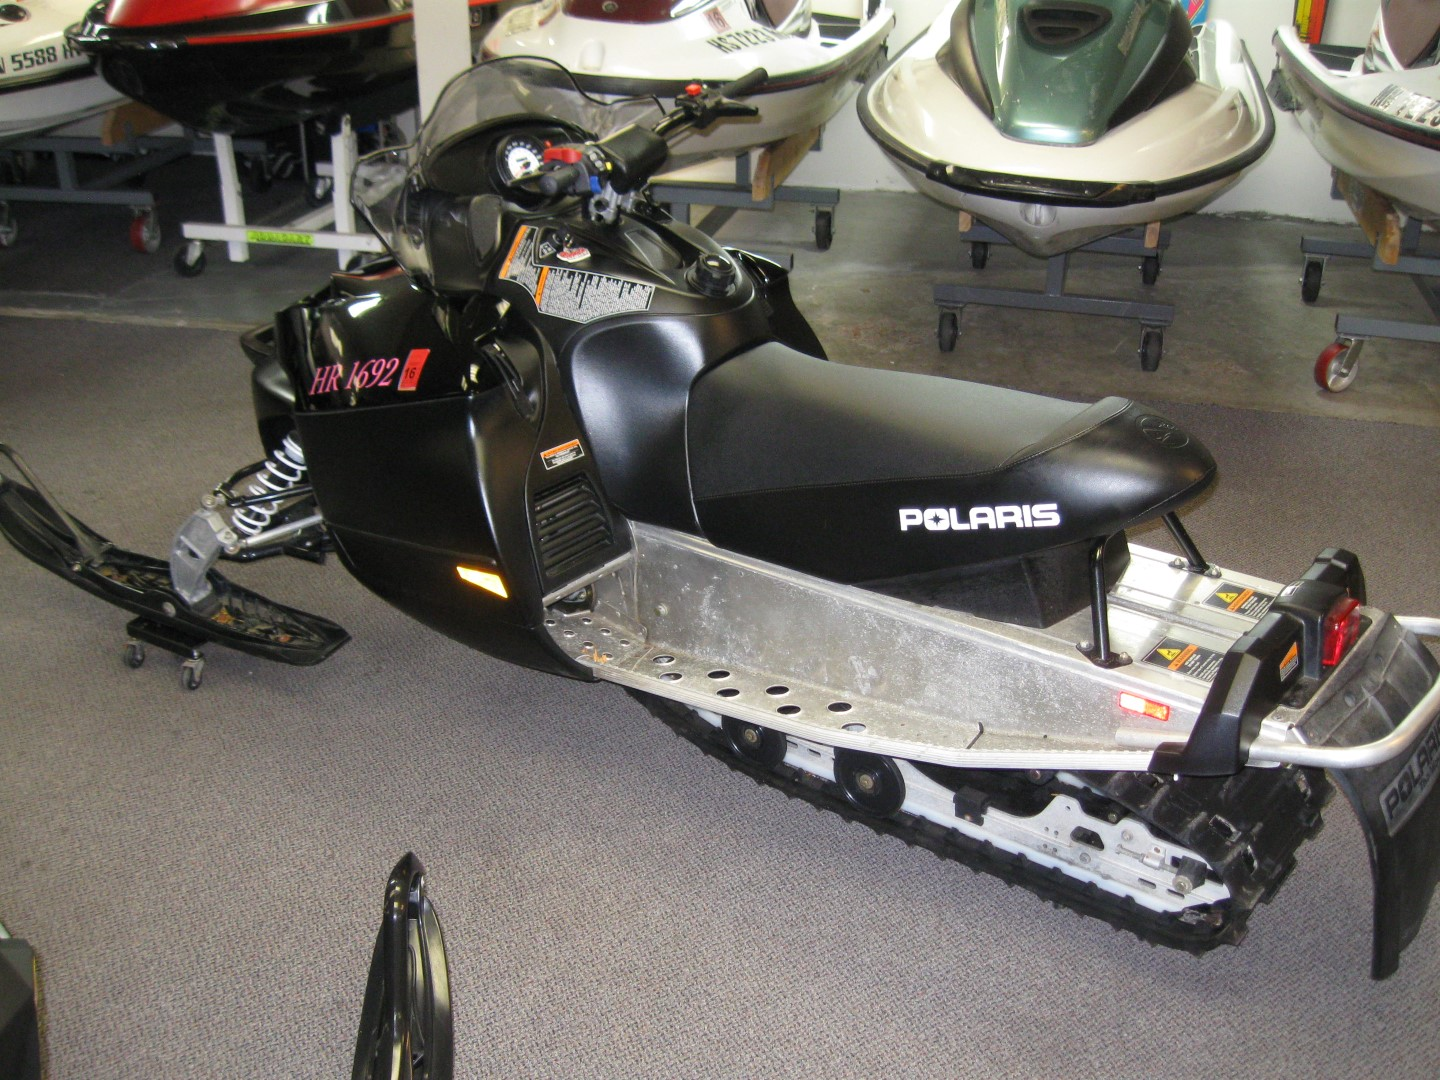 2008 Polaris IQ Shift 600 for sale black minnetonka mn seaberg motorsports crosslake mn rear quarter view black